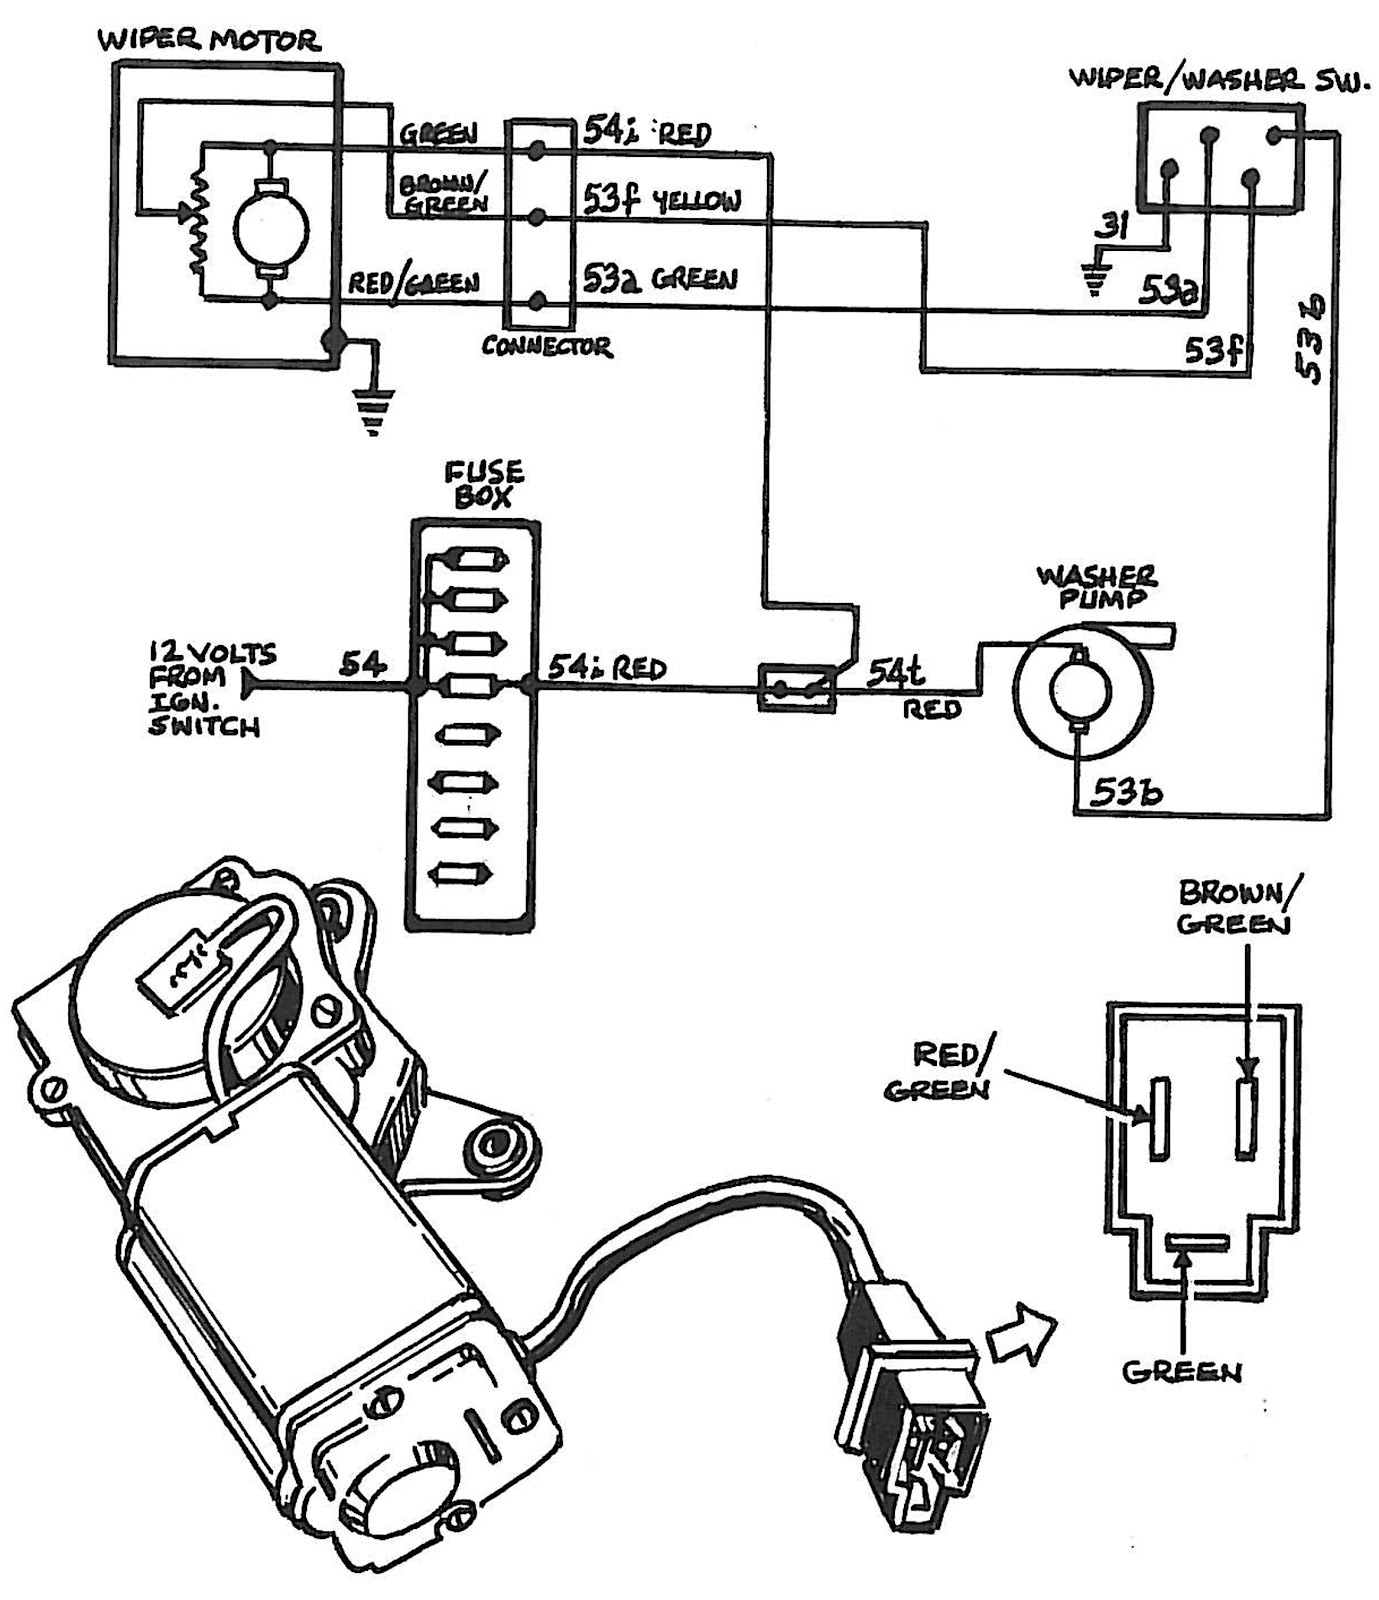 Chevrolet Wiper Wiring Diagram on 1993 Dodge Dakota Headlight Wiring Diagram